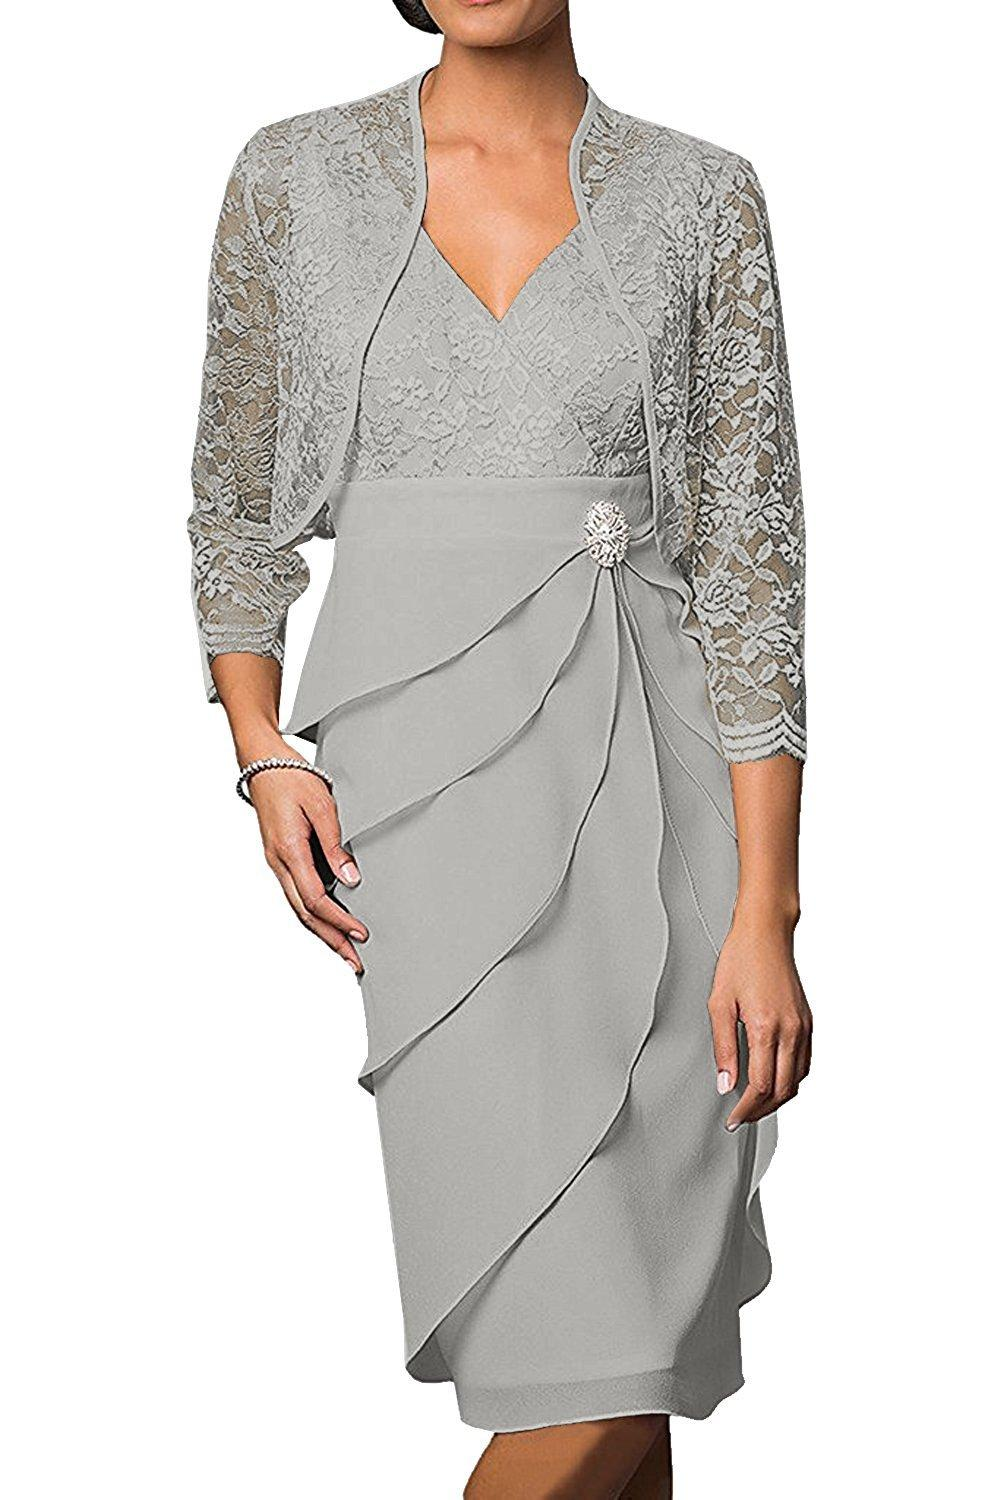 ynqnfsMH69 Women's Modest Mother of Bride Dresses Short with Jacket 3/4 Sleeves Silver prom dress